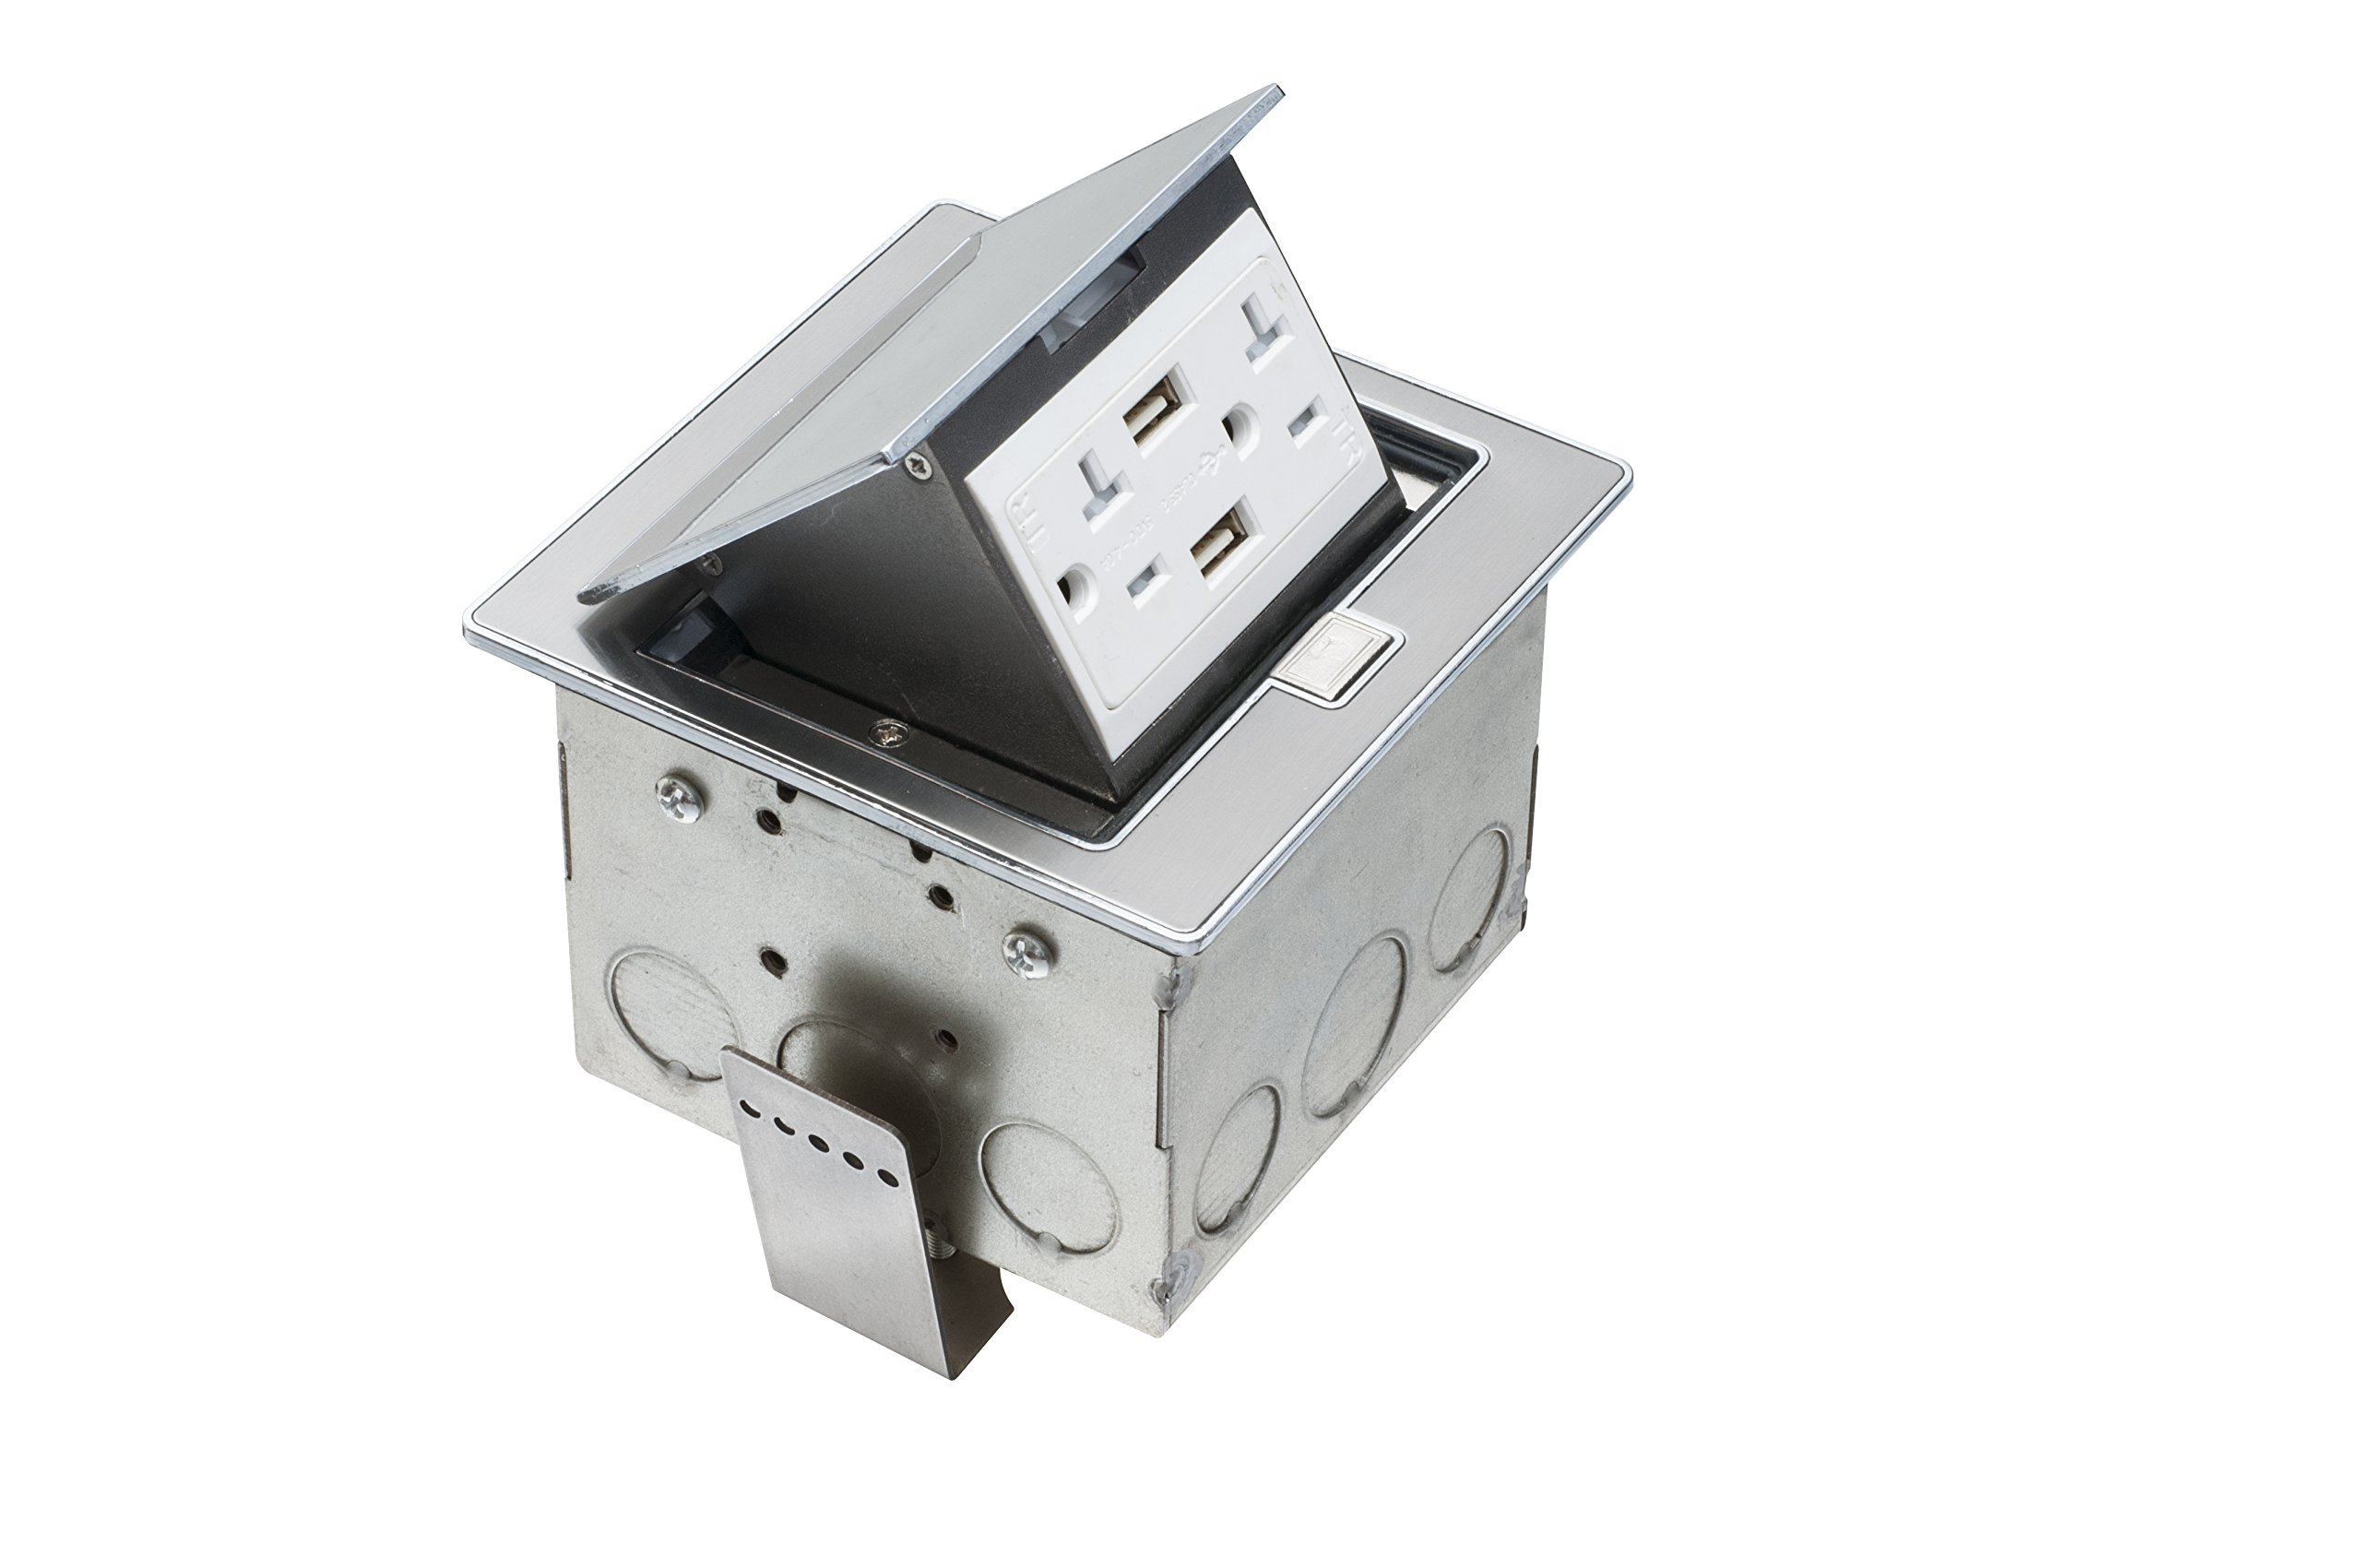 Arlington FLBT440USS-1 Countertop Trapdoor Cover Box Kit with 2 USB Ports and 20-Amp TR Receptacle, Stainless Steel, 1-Pack